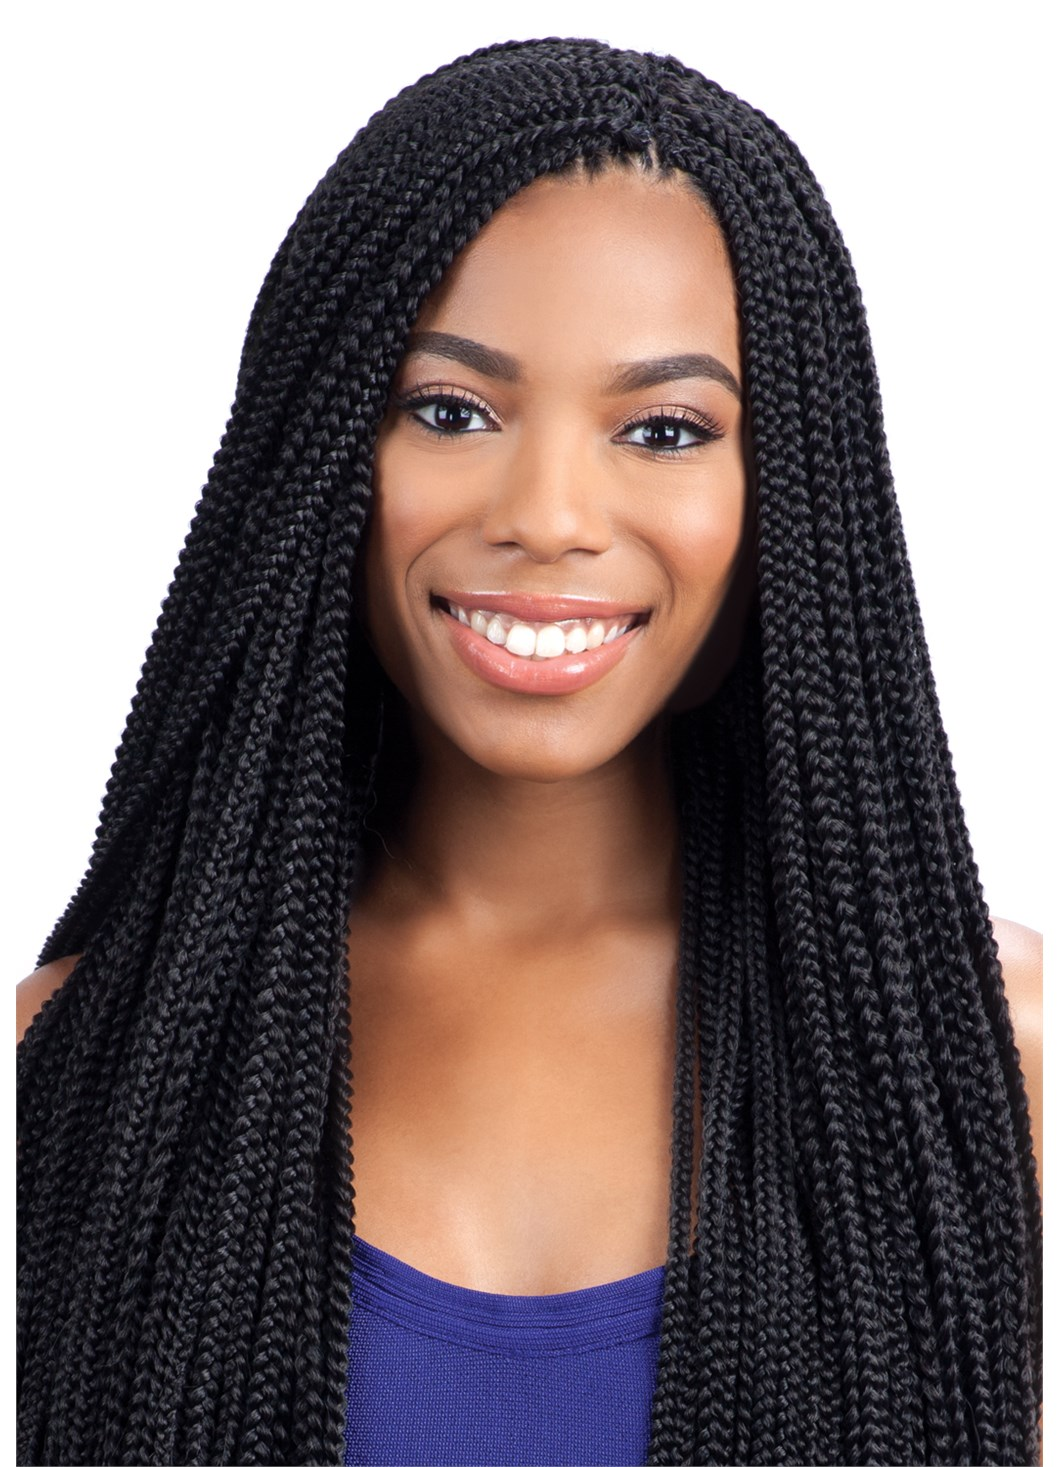 Crochet Box Braids Pre Braided Hair : ... > Hair Care & Styling > Hair Extensions & Wigs > Hair Ex...